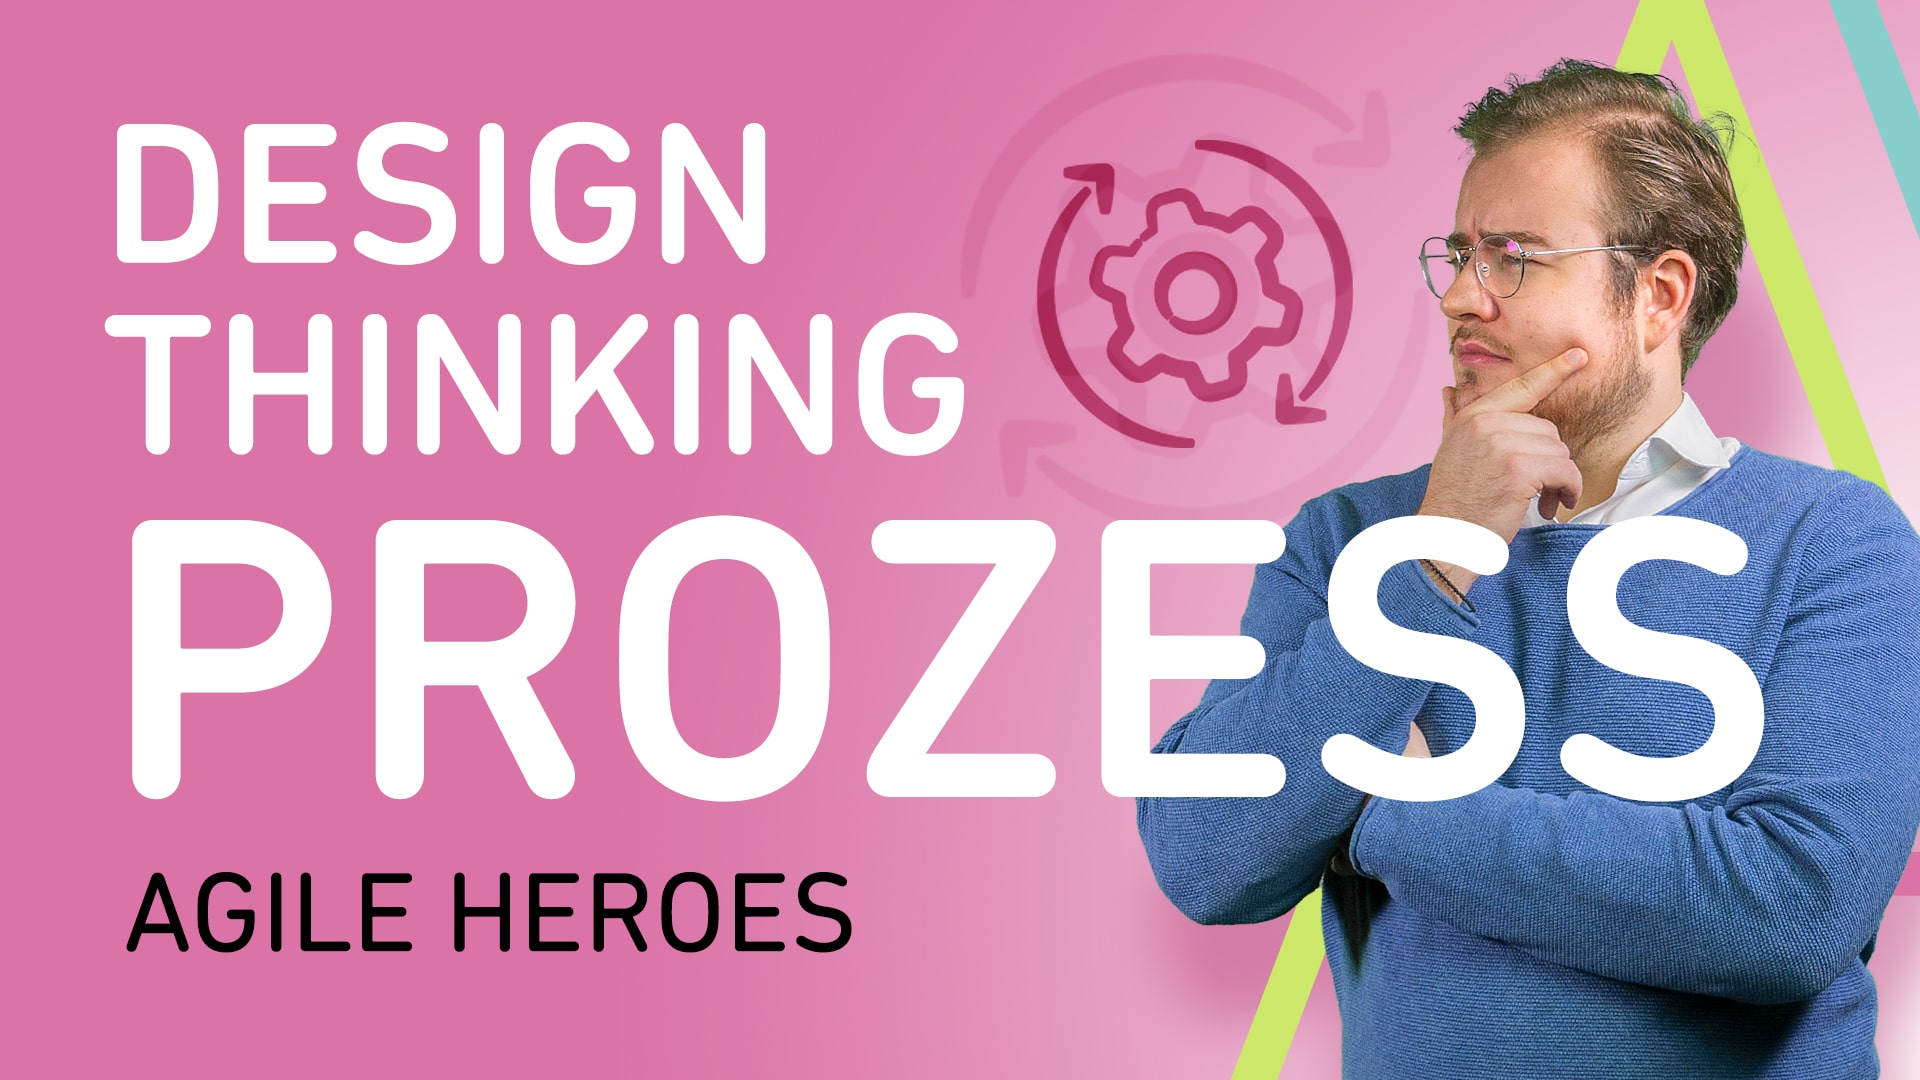 design-thinking-prozess